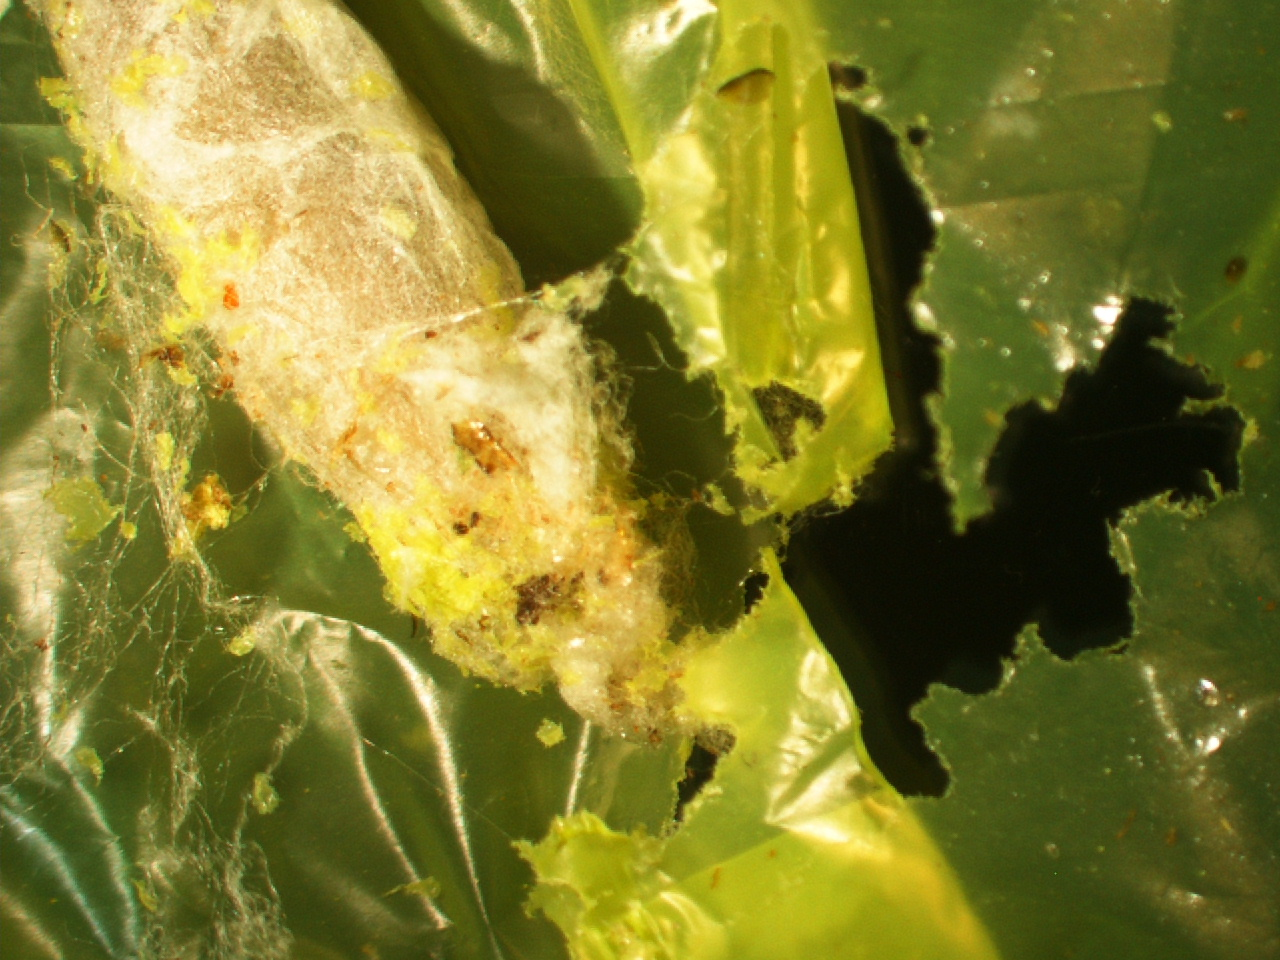 Plastic-eating caterpillar offers waste solution